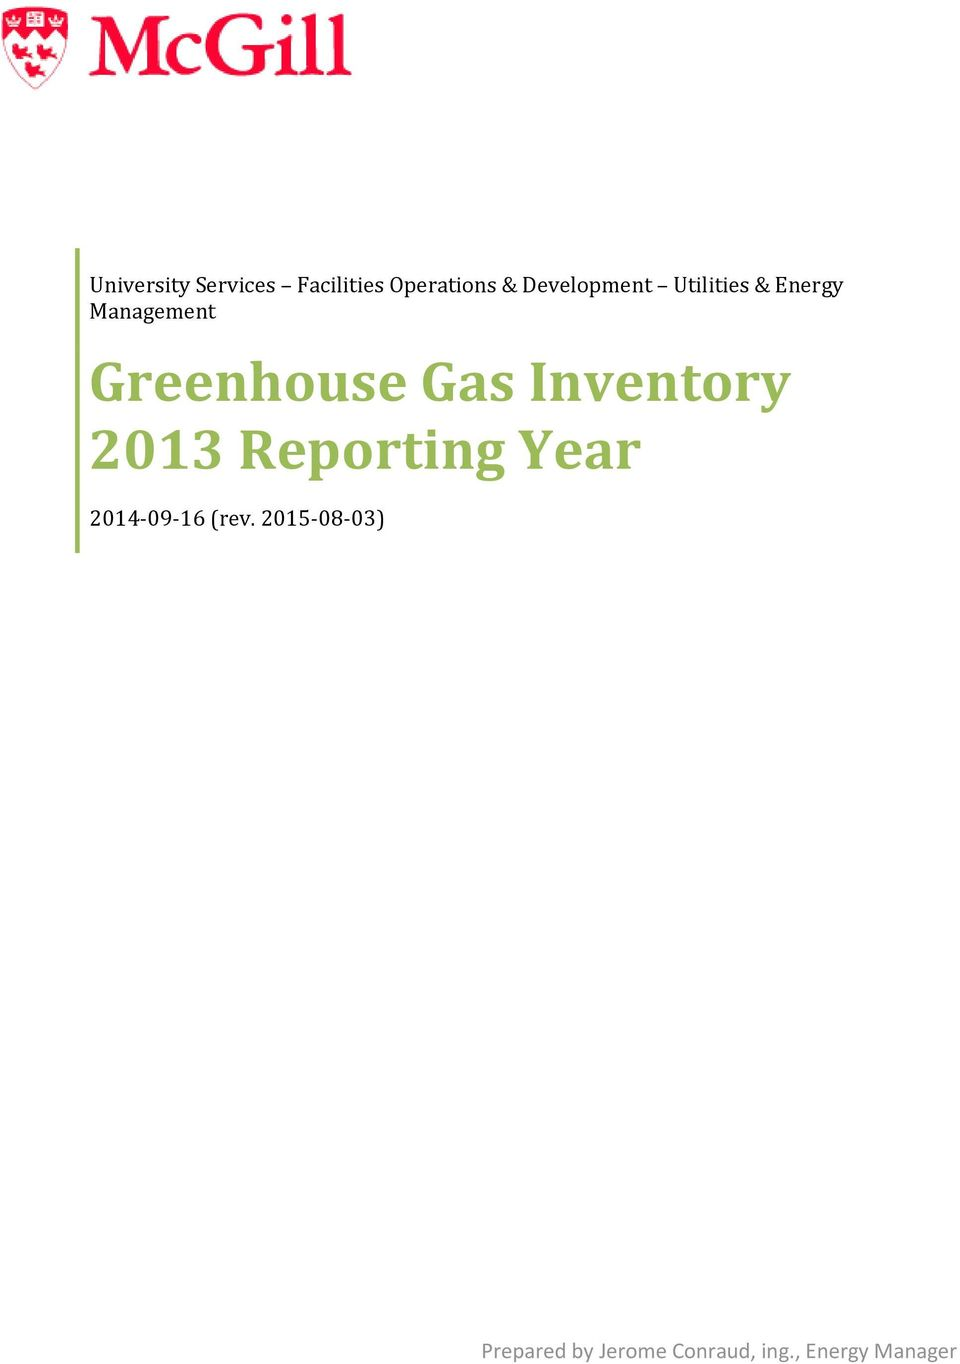 Greenhouse Gas Inventory 2013 Reporting Year